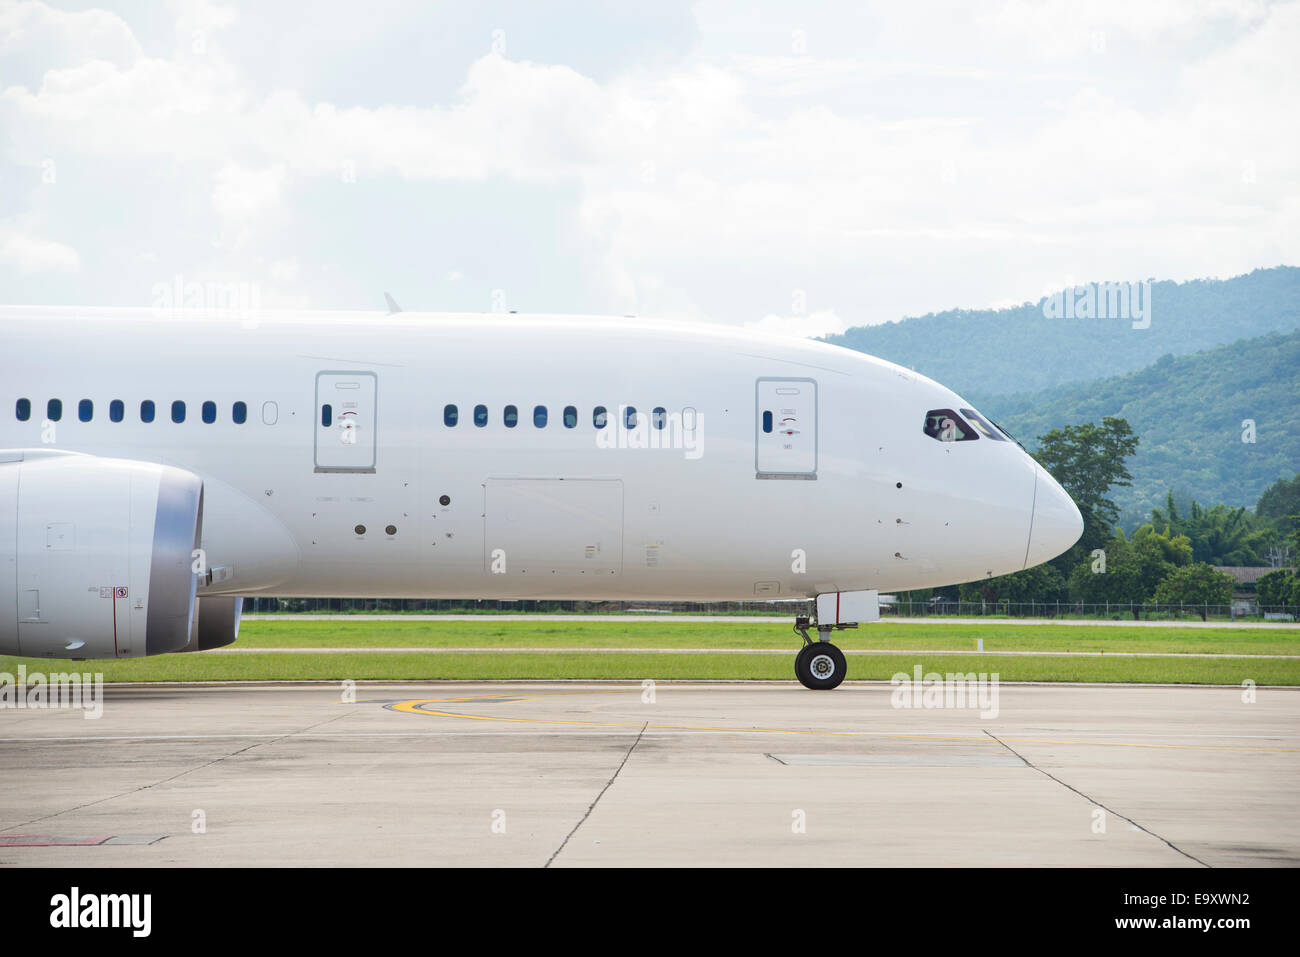 Commercial airplane taxiing - Stock Image